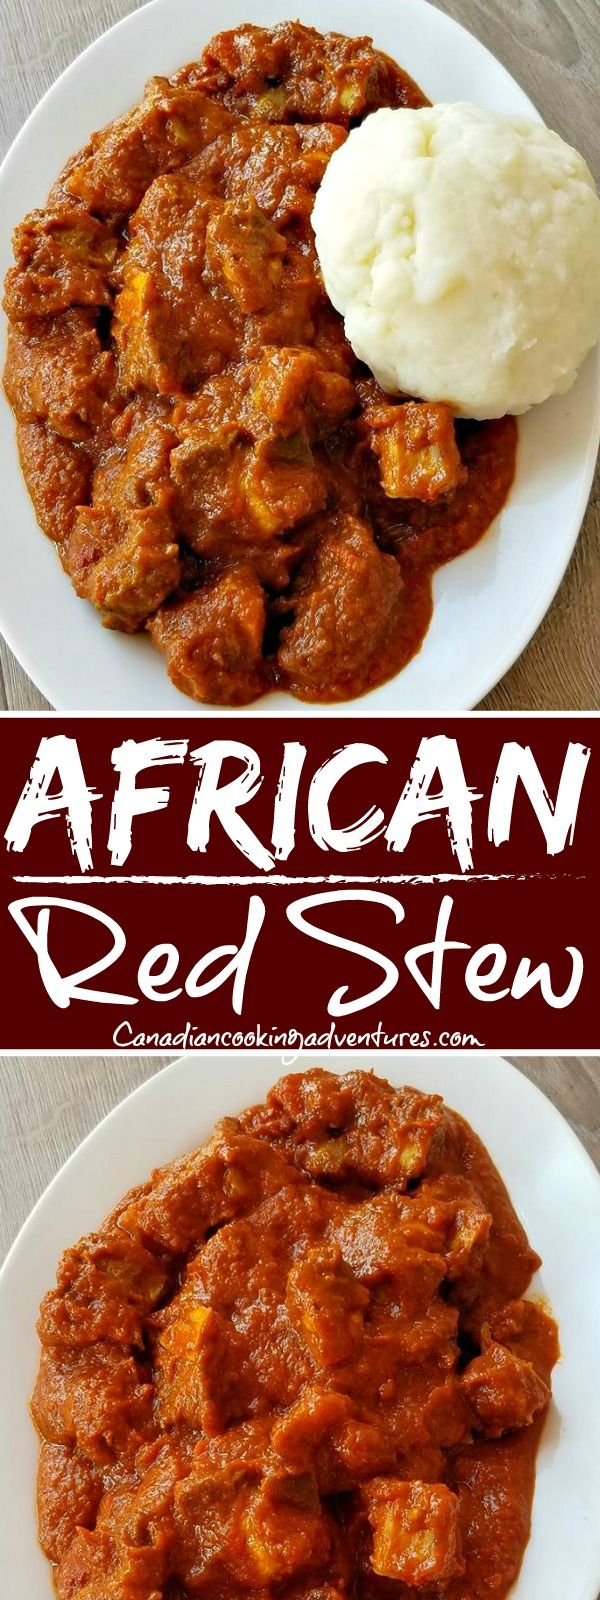 African Red Stew